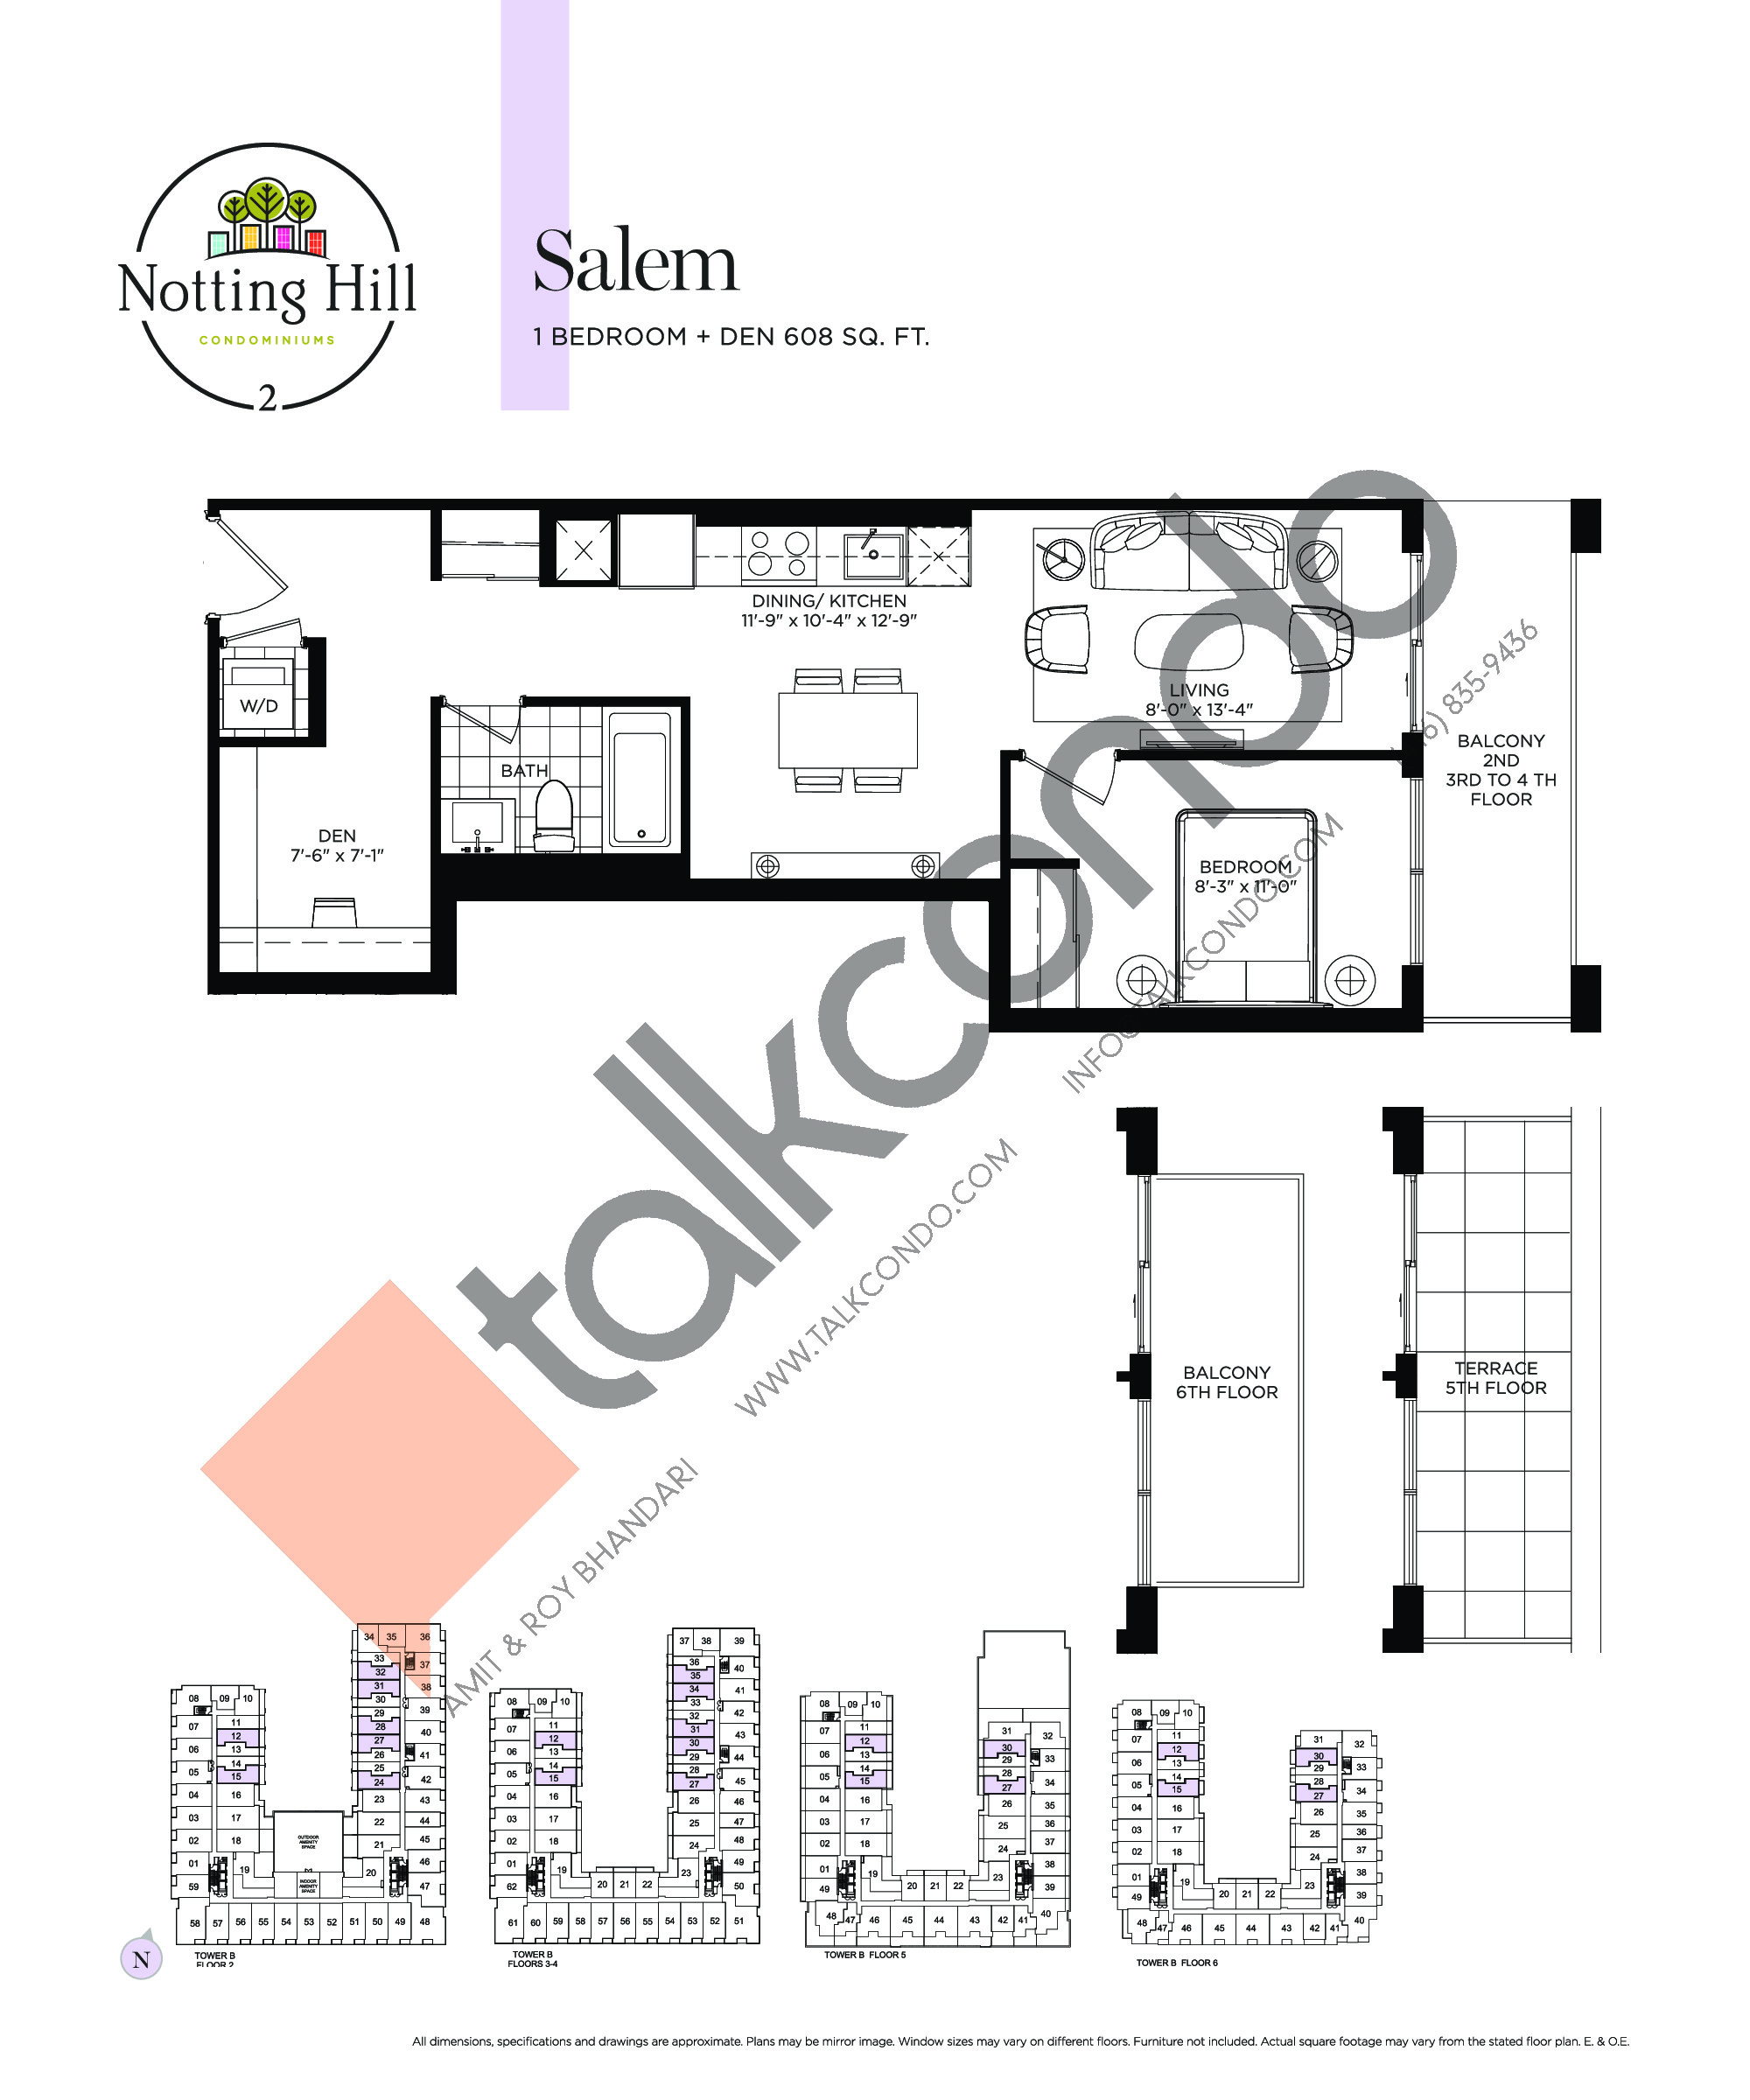 Salem Floor Plan at Notting Hill Phase 3 Condos - 608 sq.ft